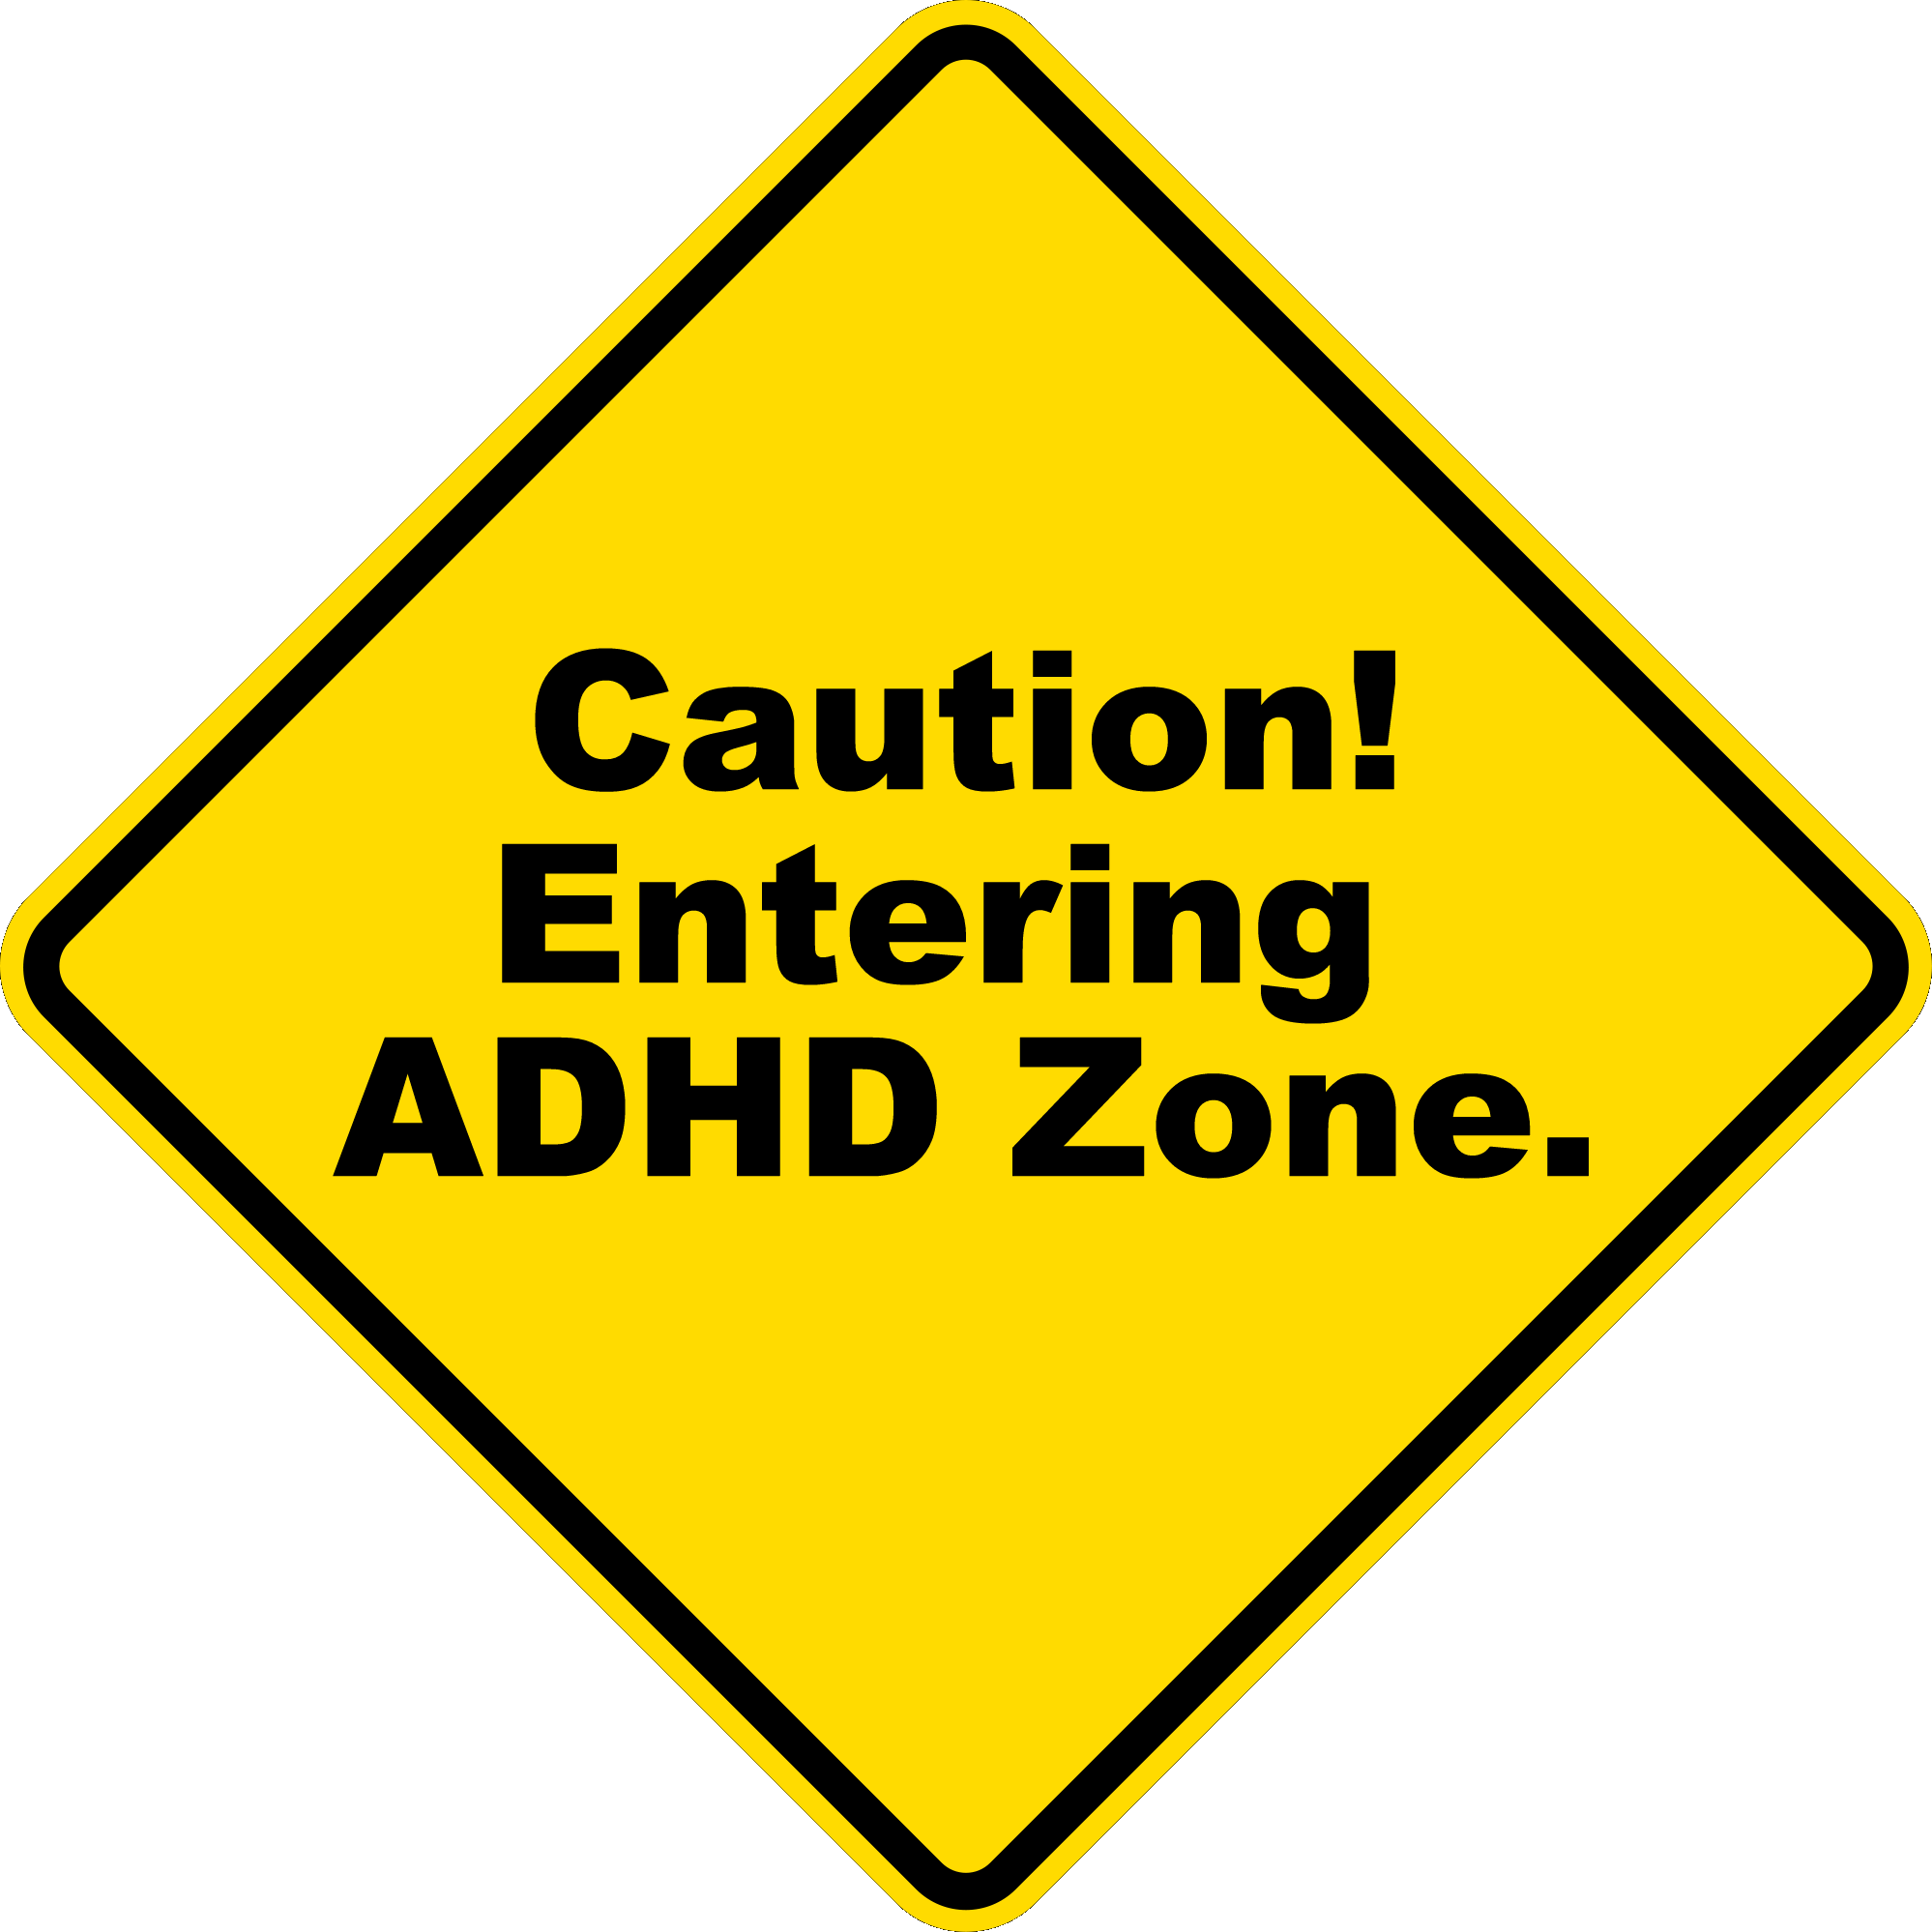 Caution: Etering ADHD Zone